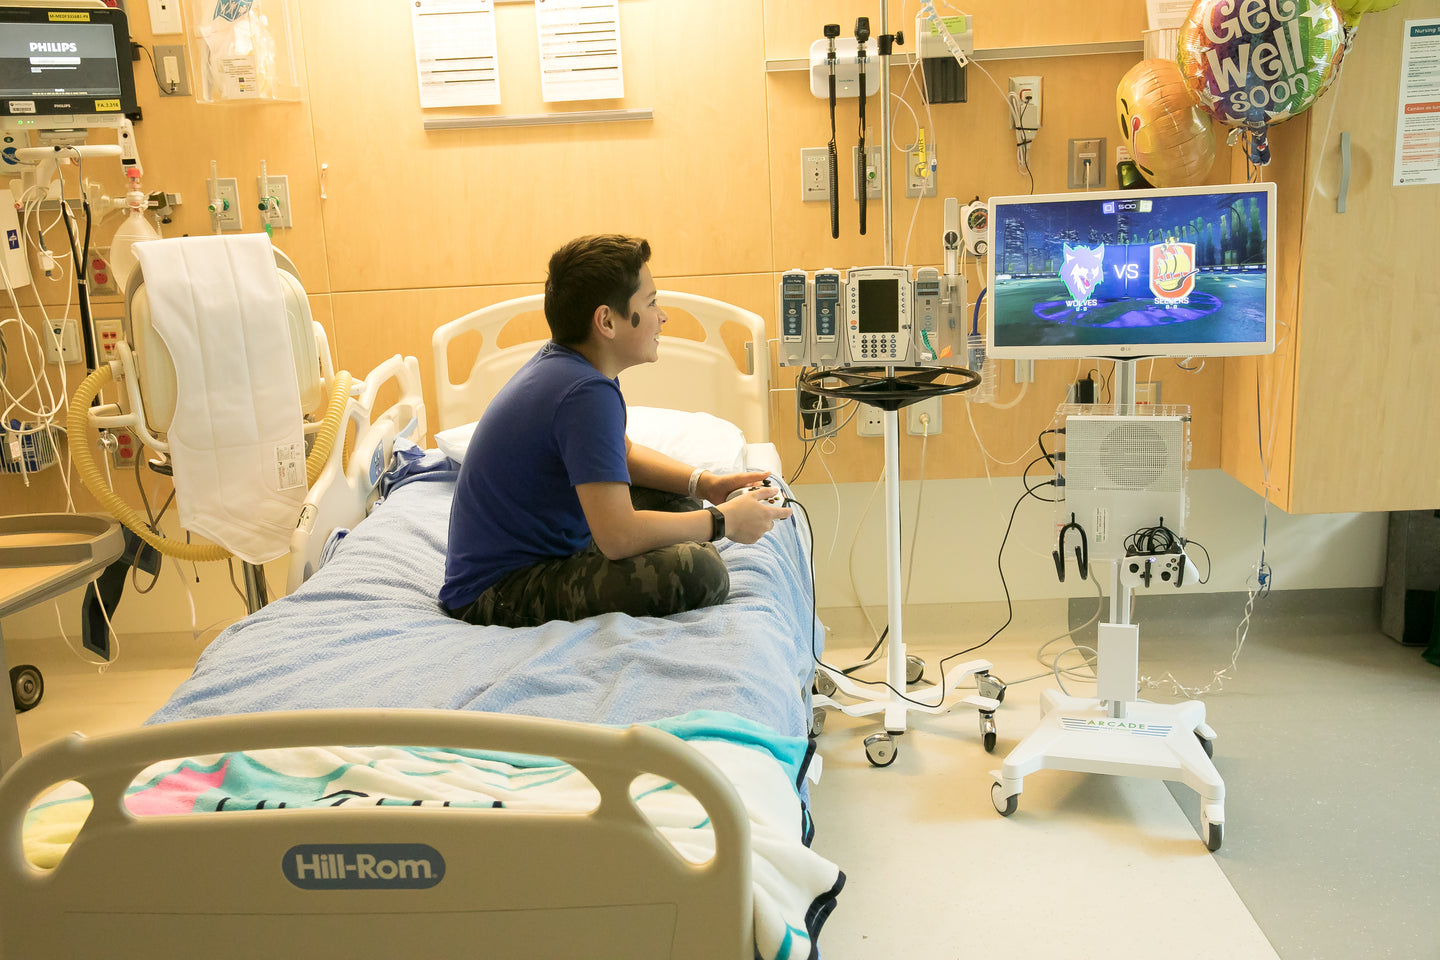 child playing mobile game cart in hospital